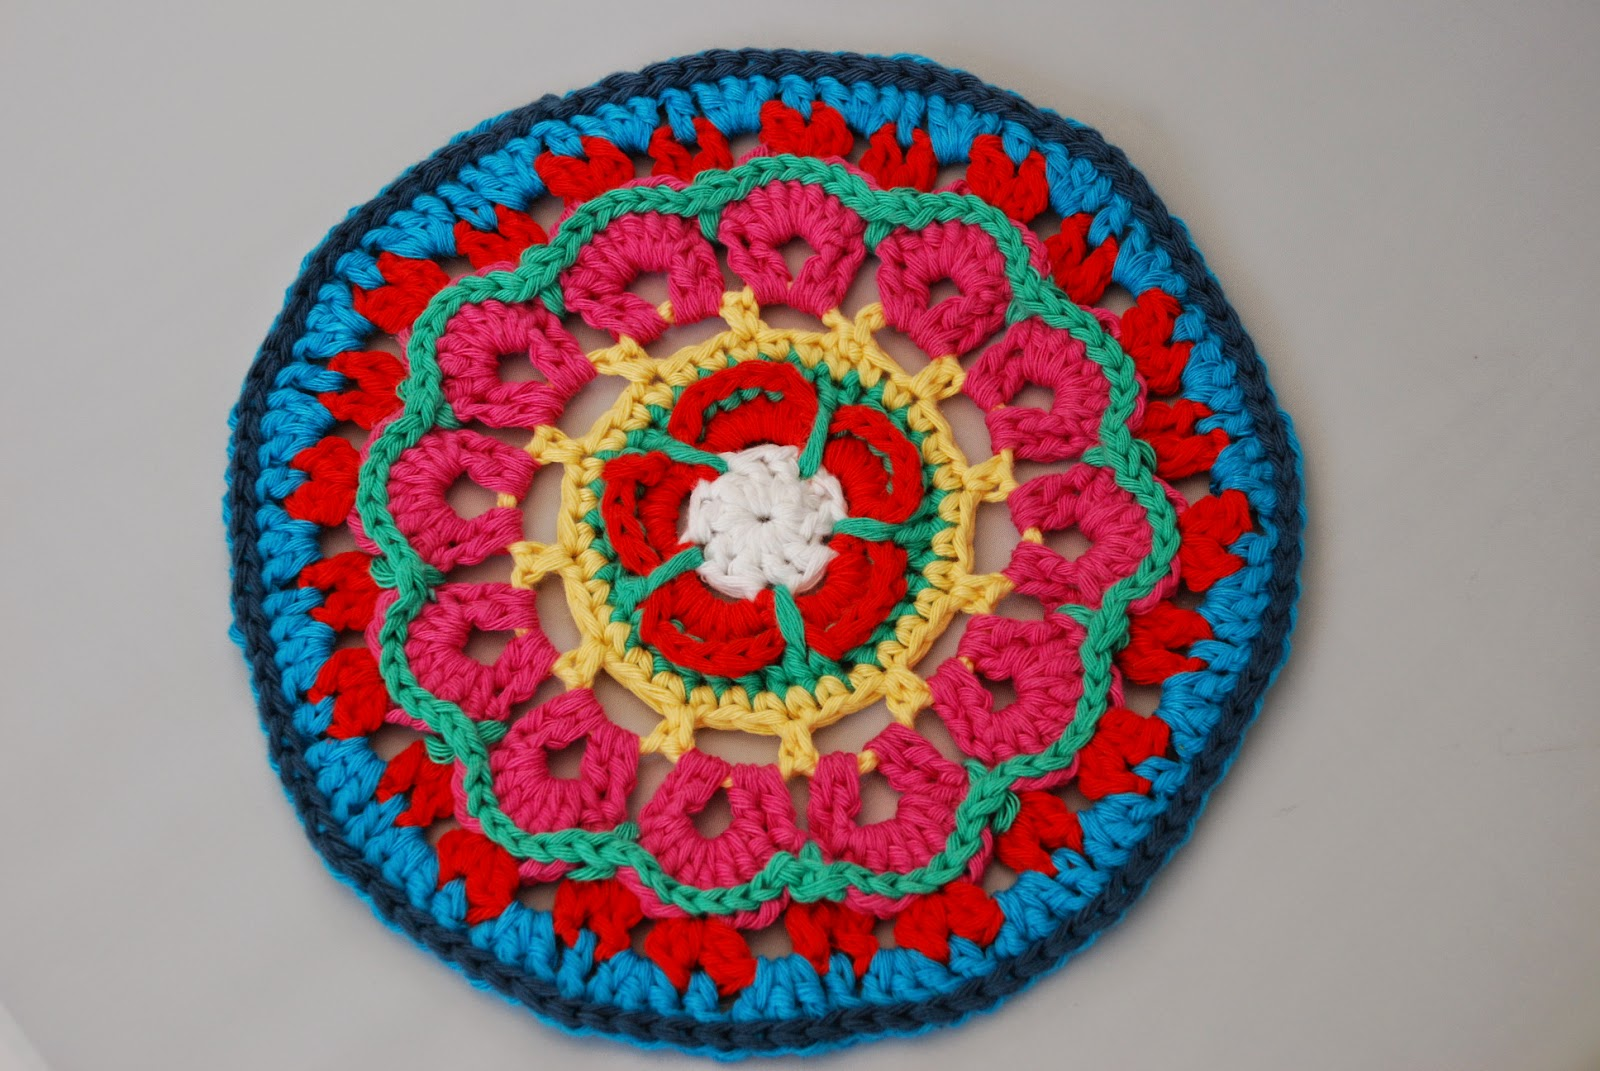 Yarndale mandala: image of hearts and flowers crochet mandala